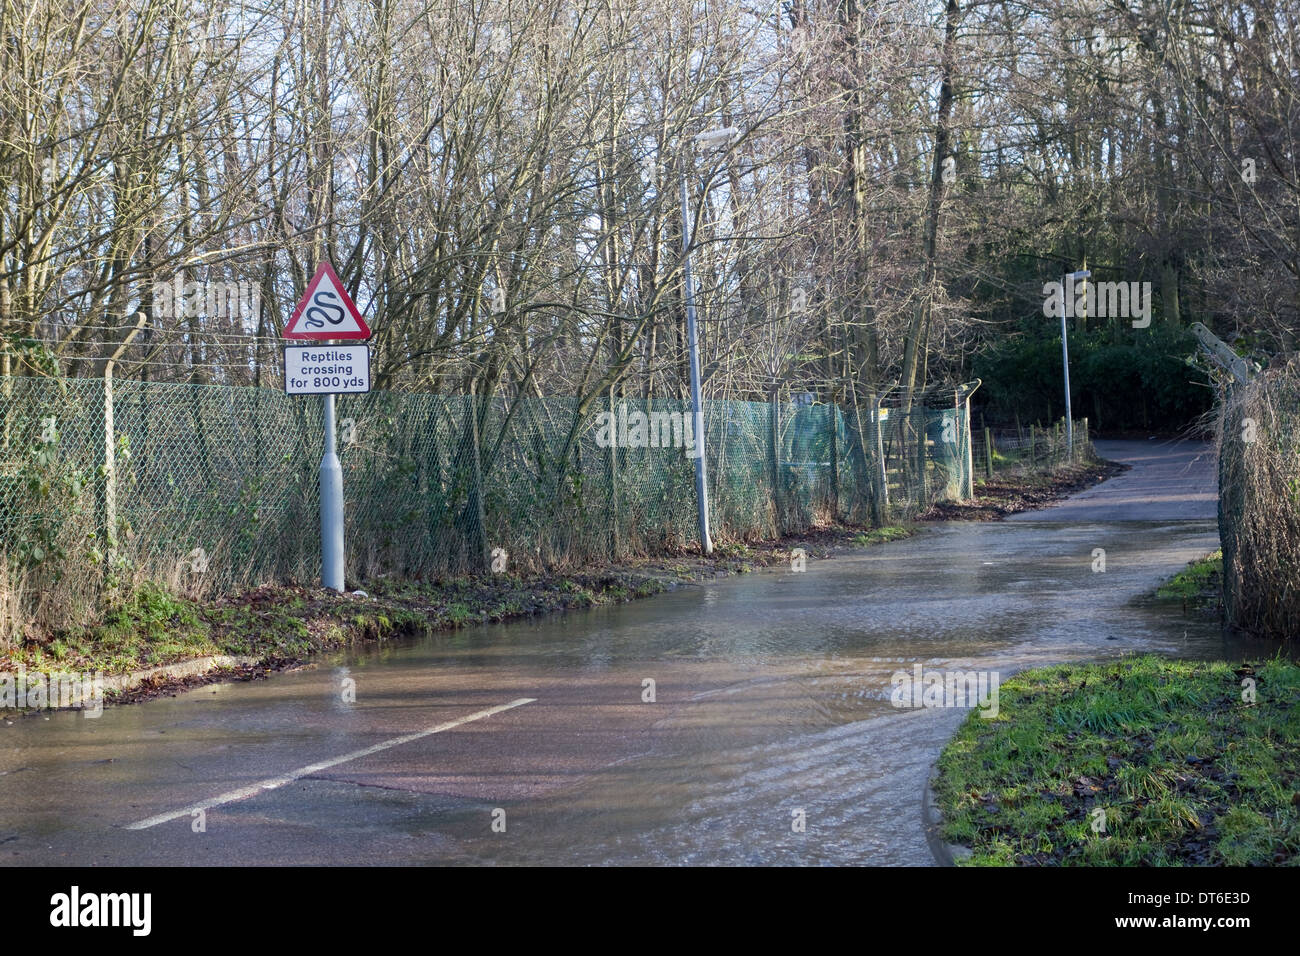 Reptiles Crossing Sign on Flooded Road - Stock Image